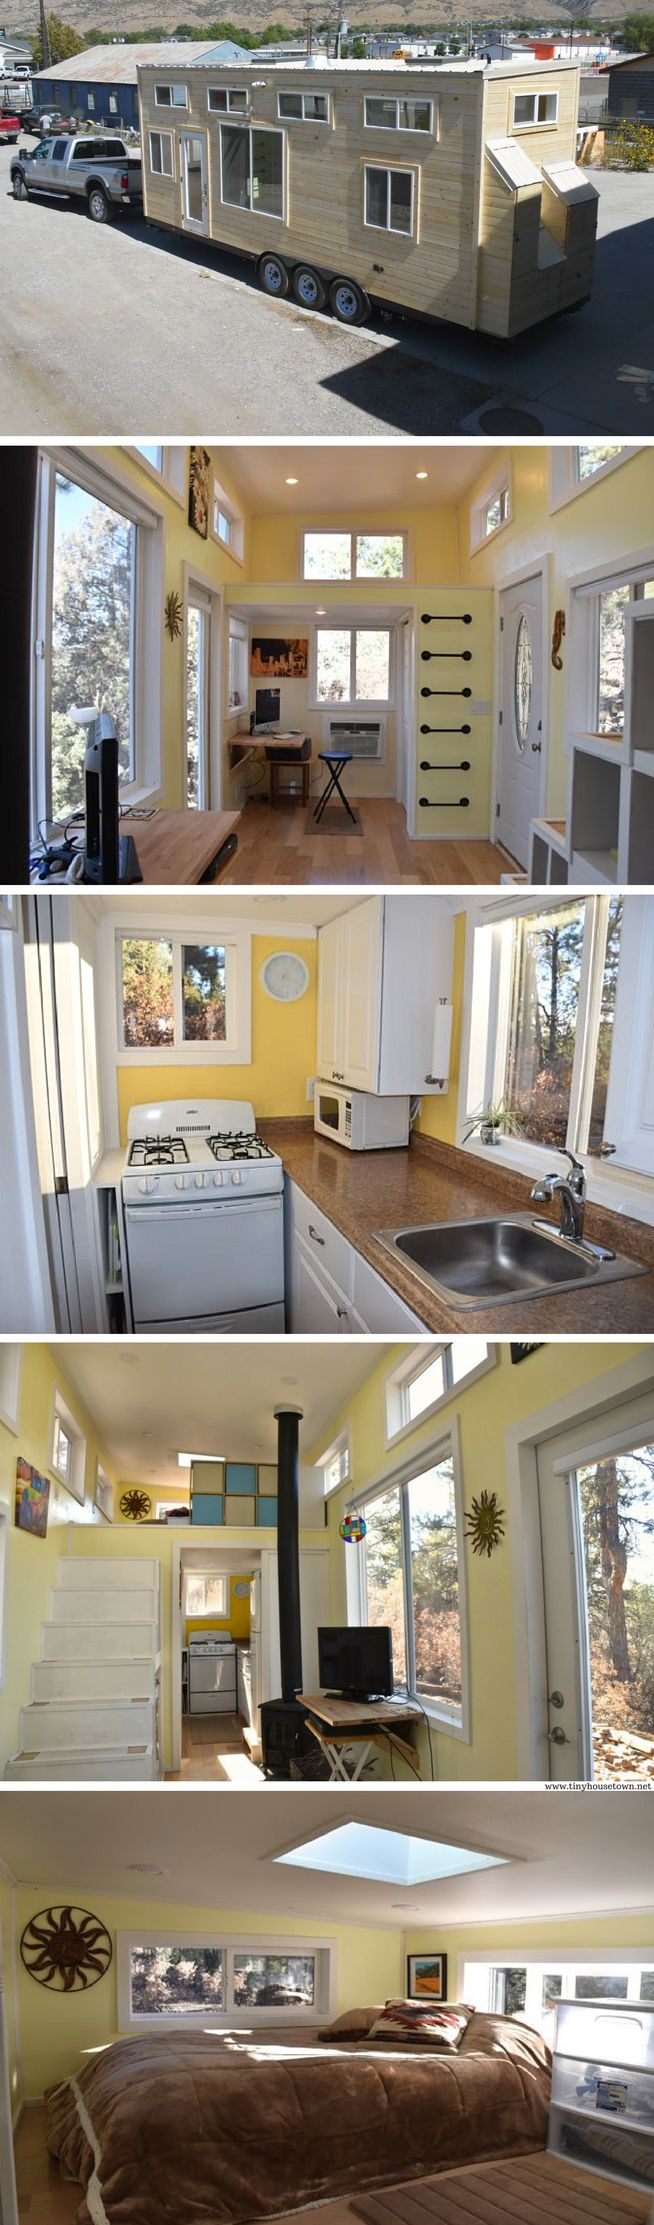 A new 310 sq ft home from Upper Valley Tiny Homes. Currently available for  sale